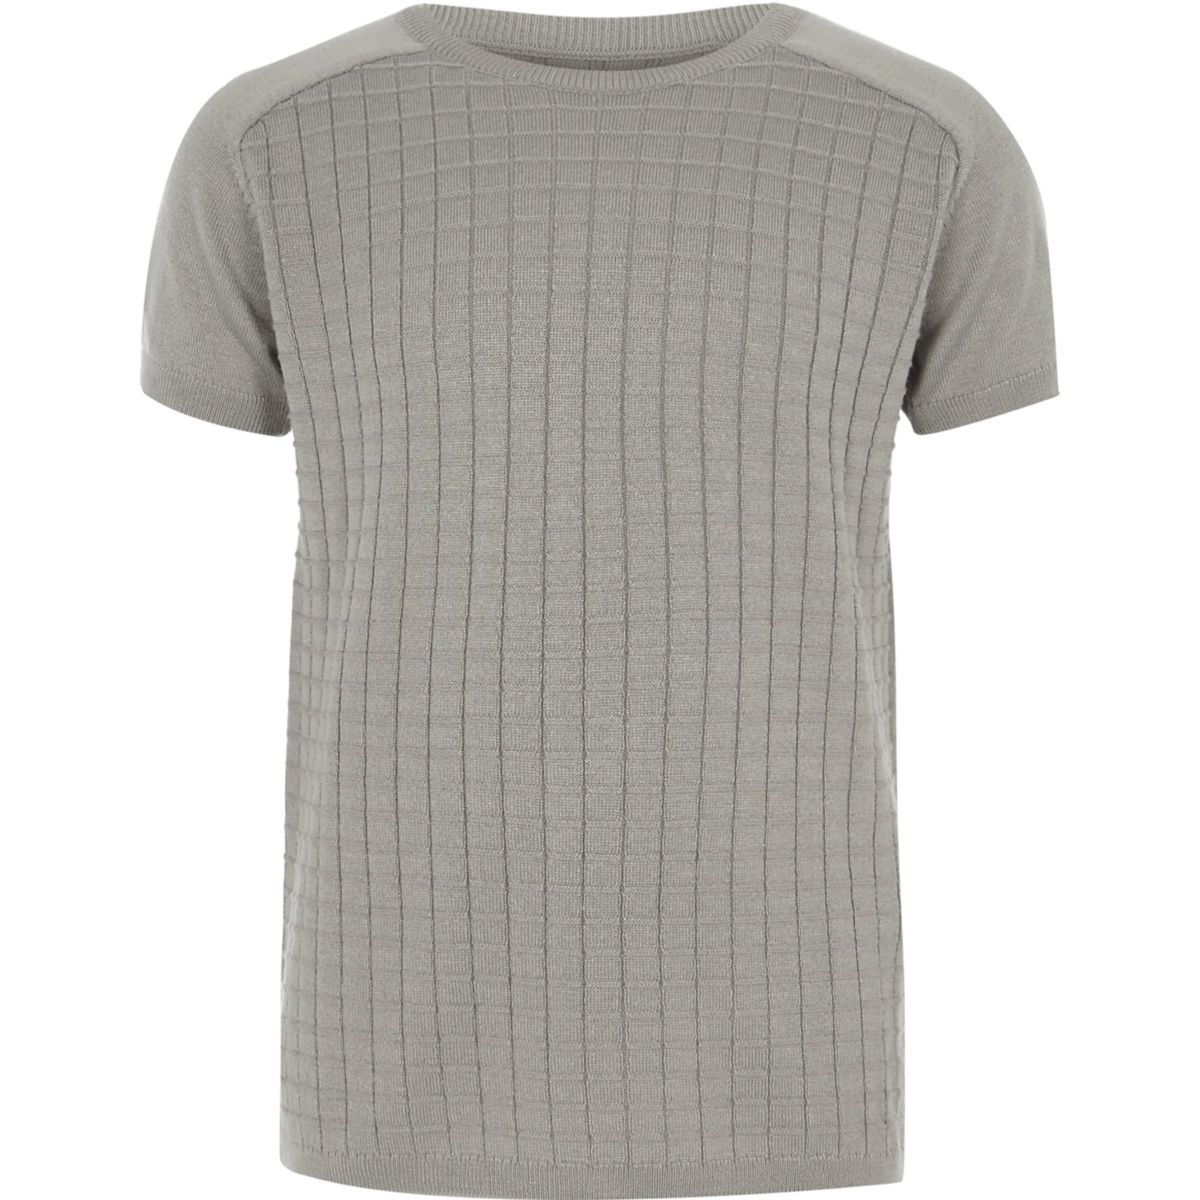 Boys grey knitted grid T-shirt